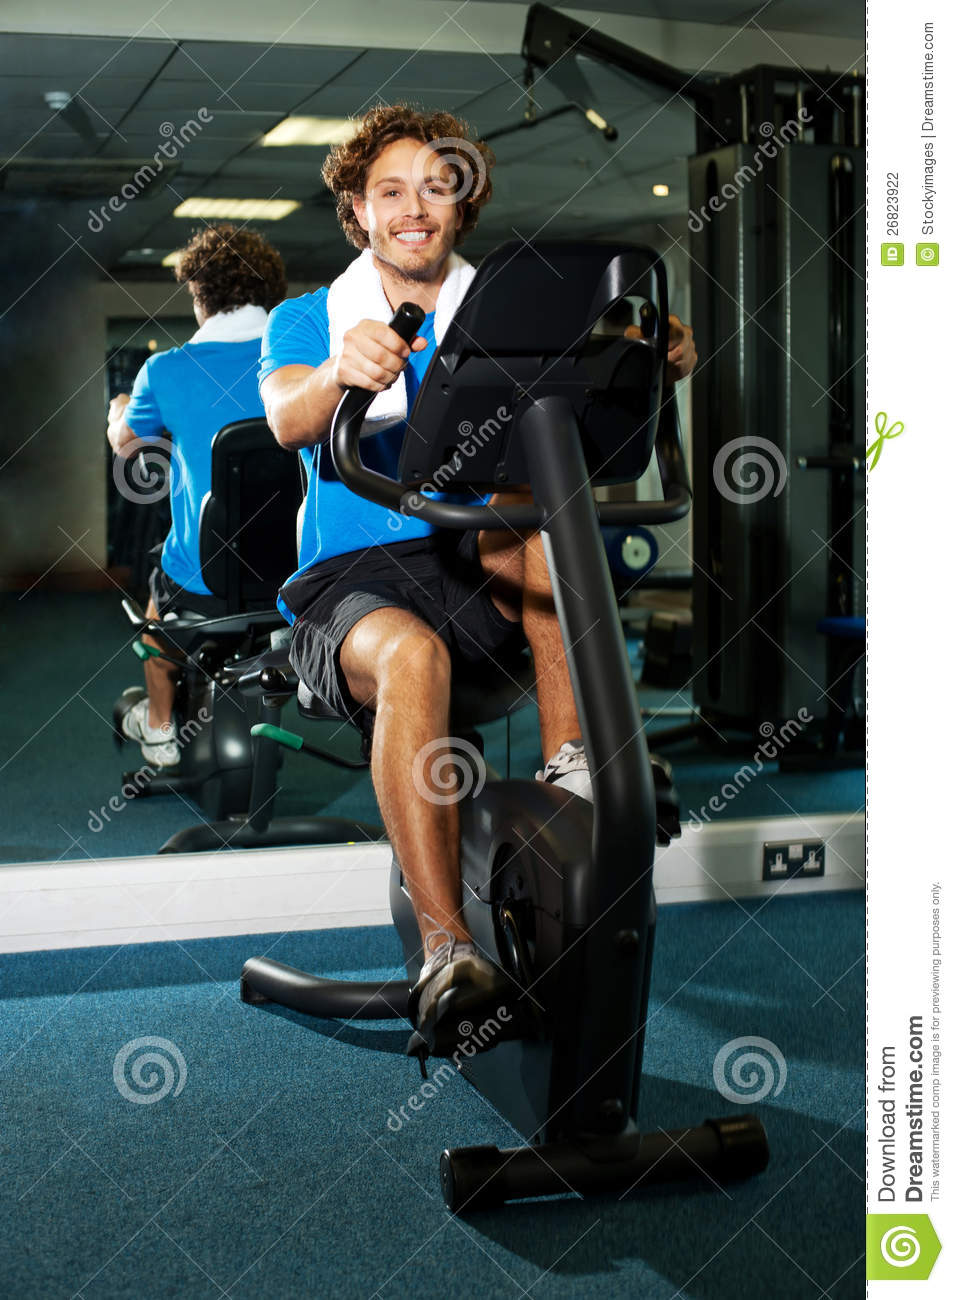 Smart Guy Working Out In The Exercise Bike Stock Photo - Image of